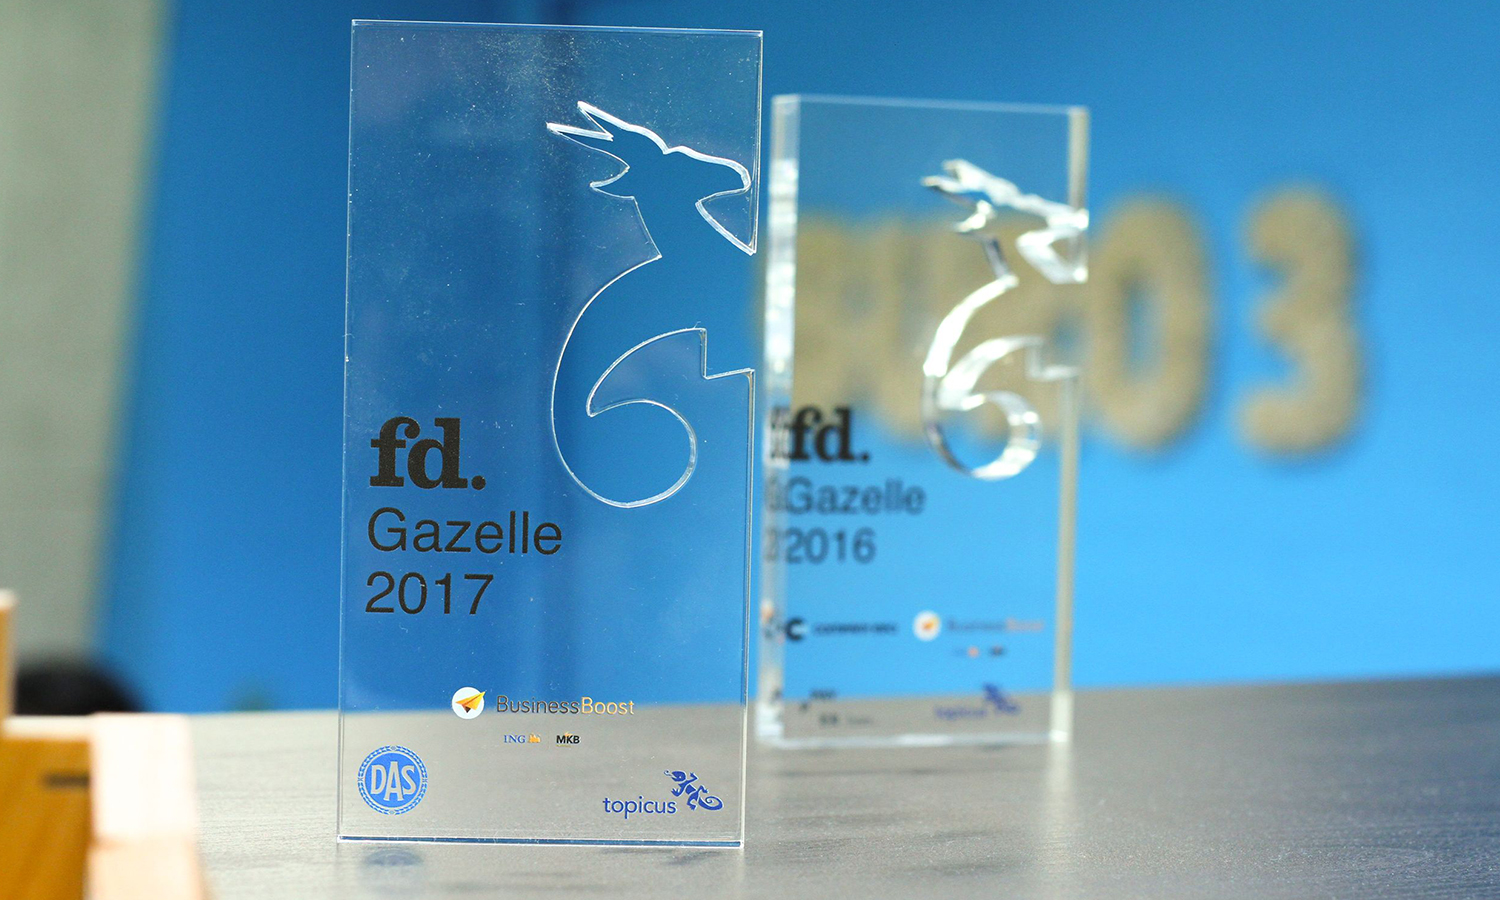 FD Gazelle Award 2017